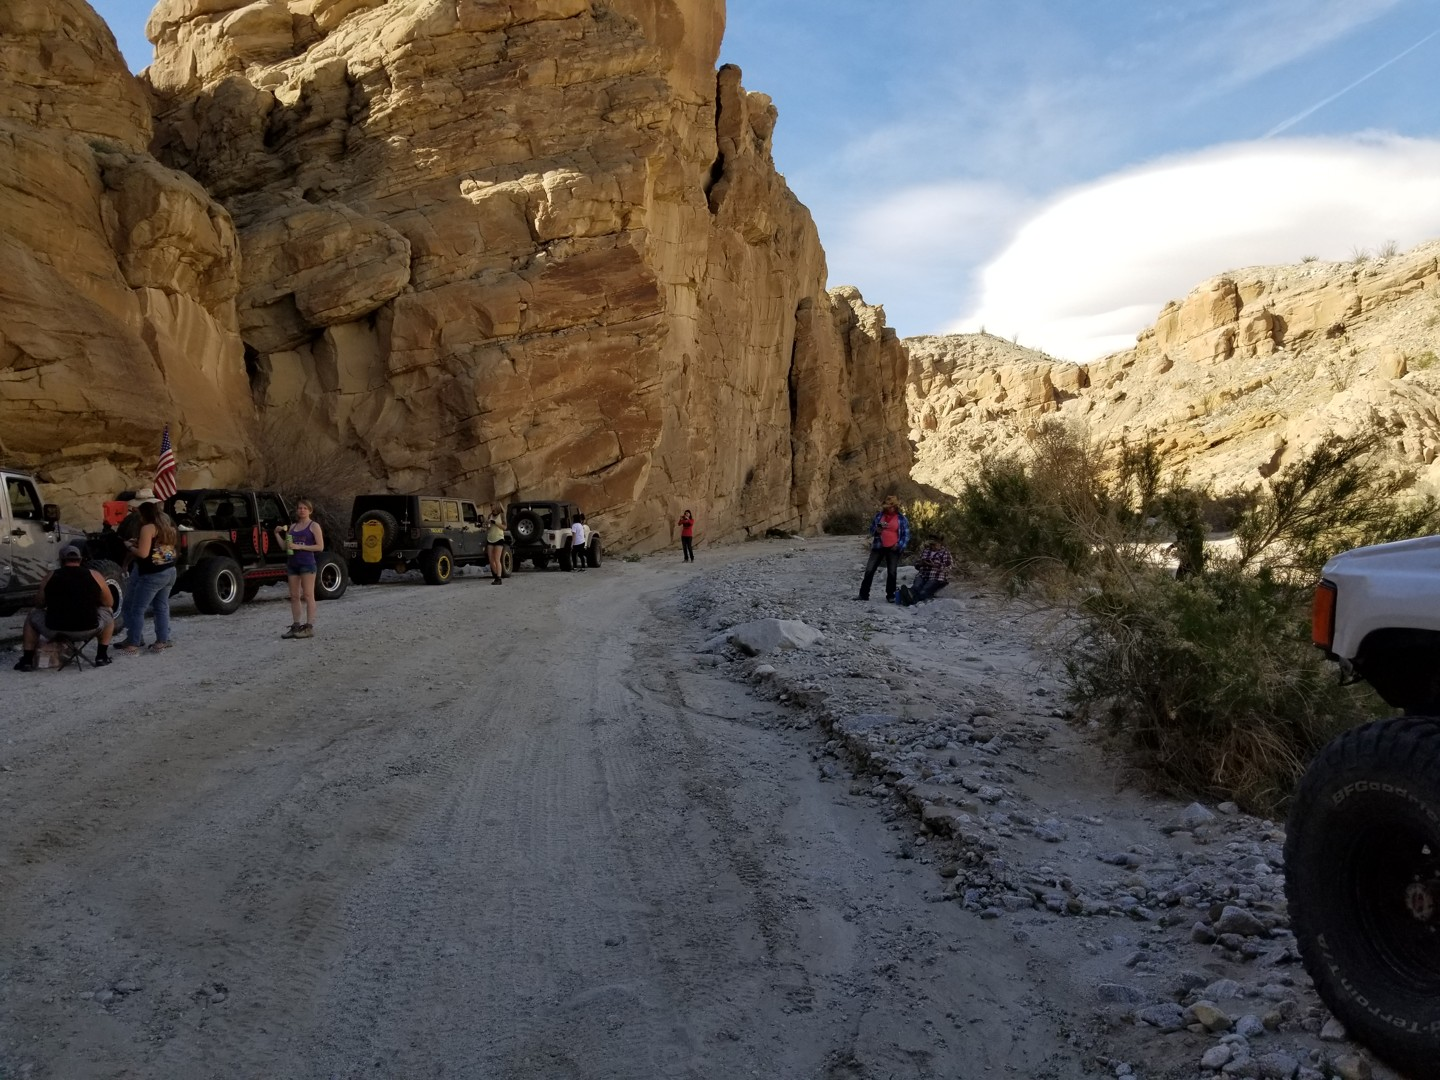 Trail Review: Sandstone Canyon